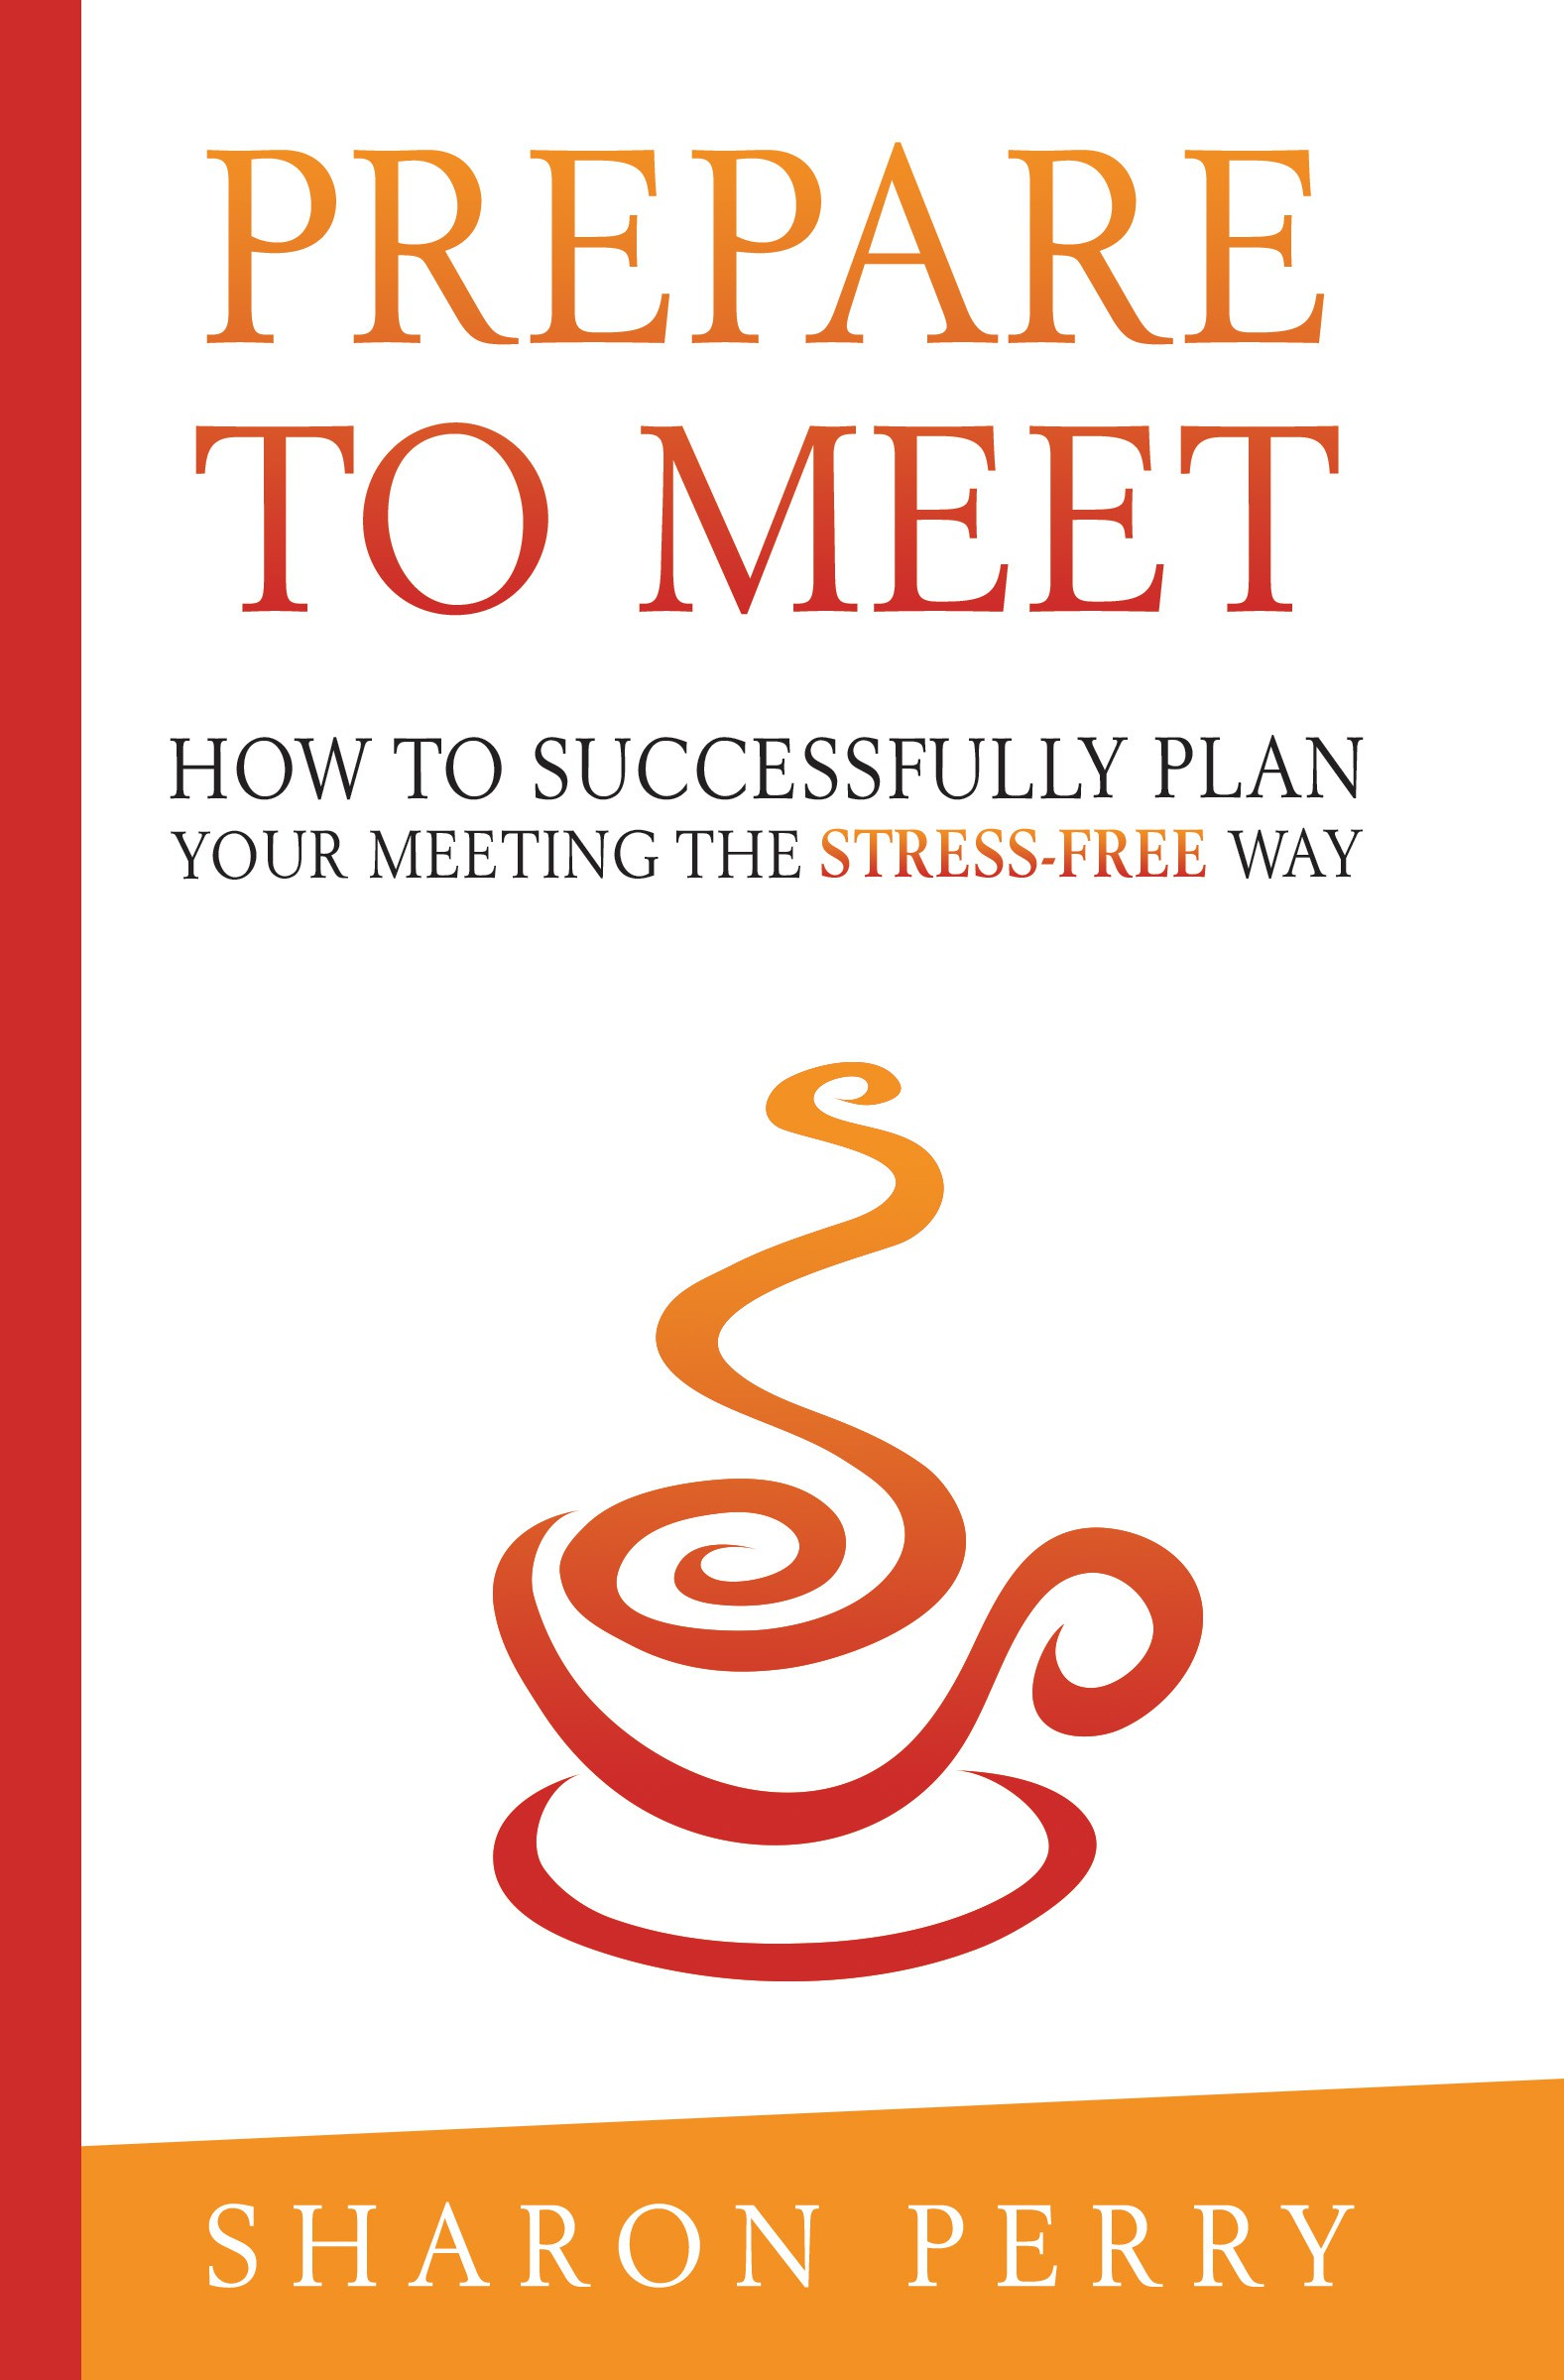 Make a business ebook cover pop on the Kindle store!